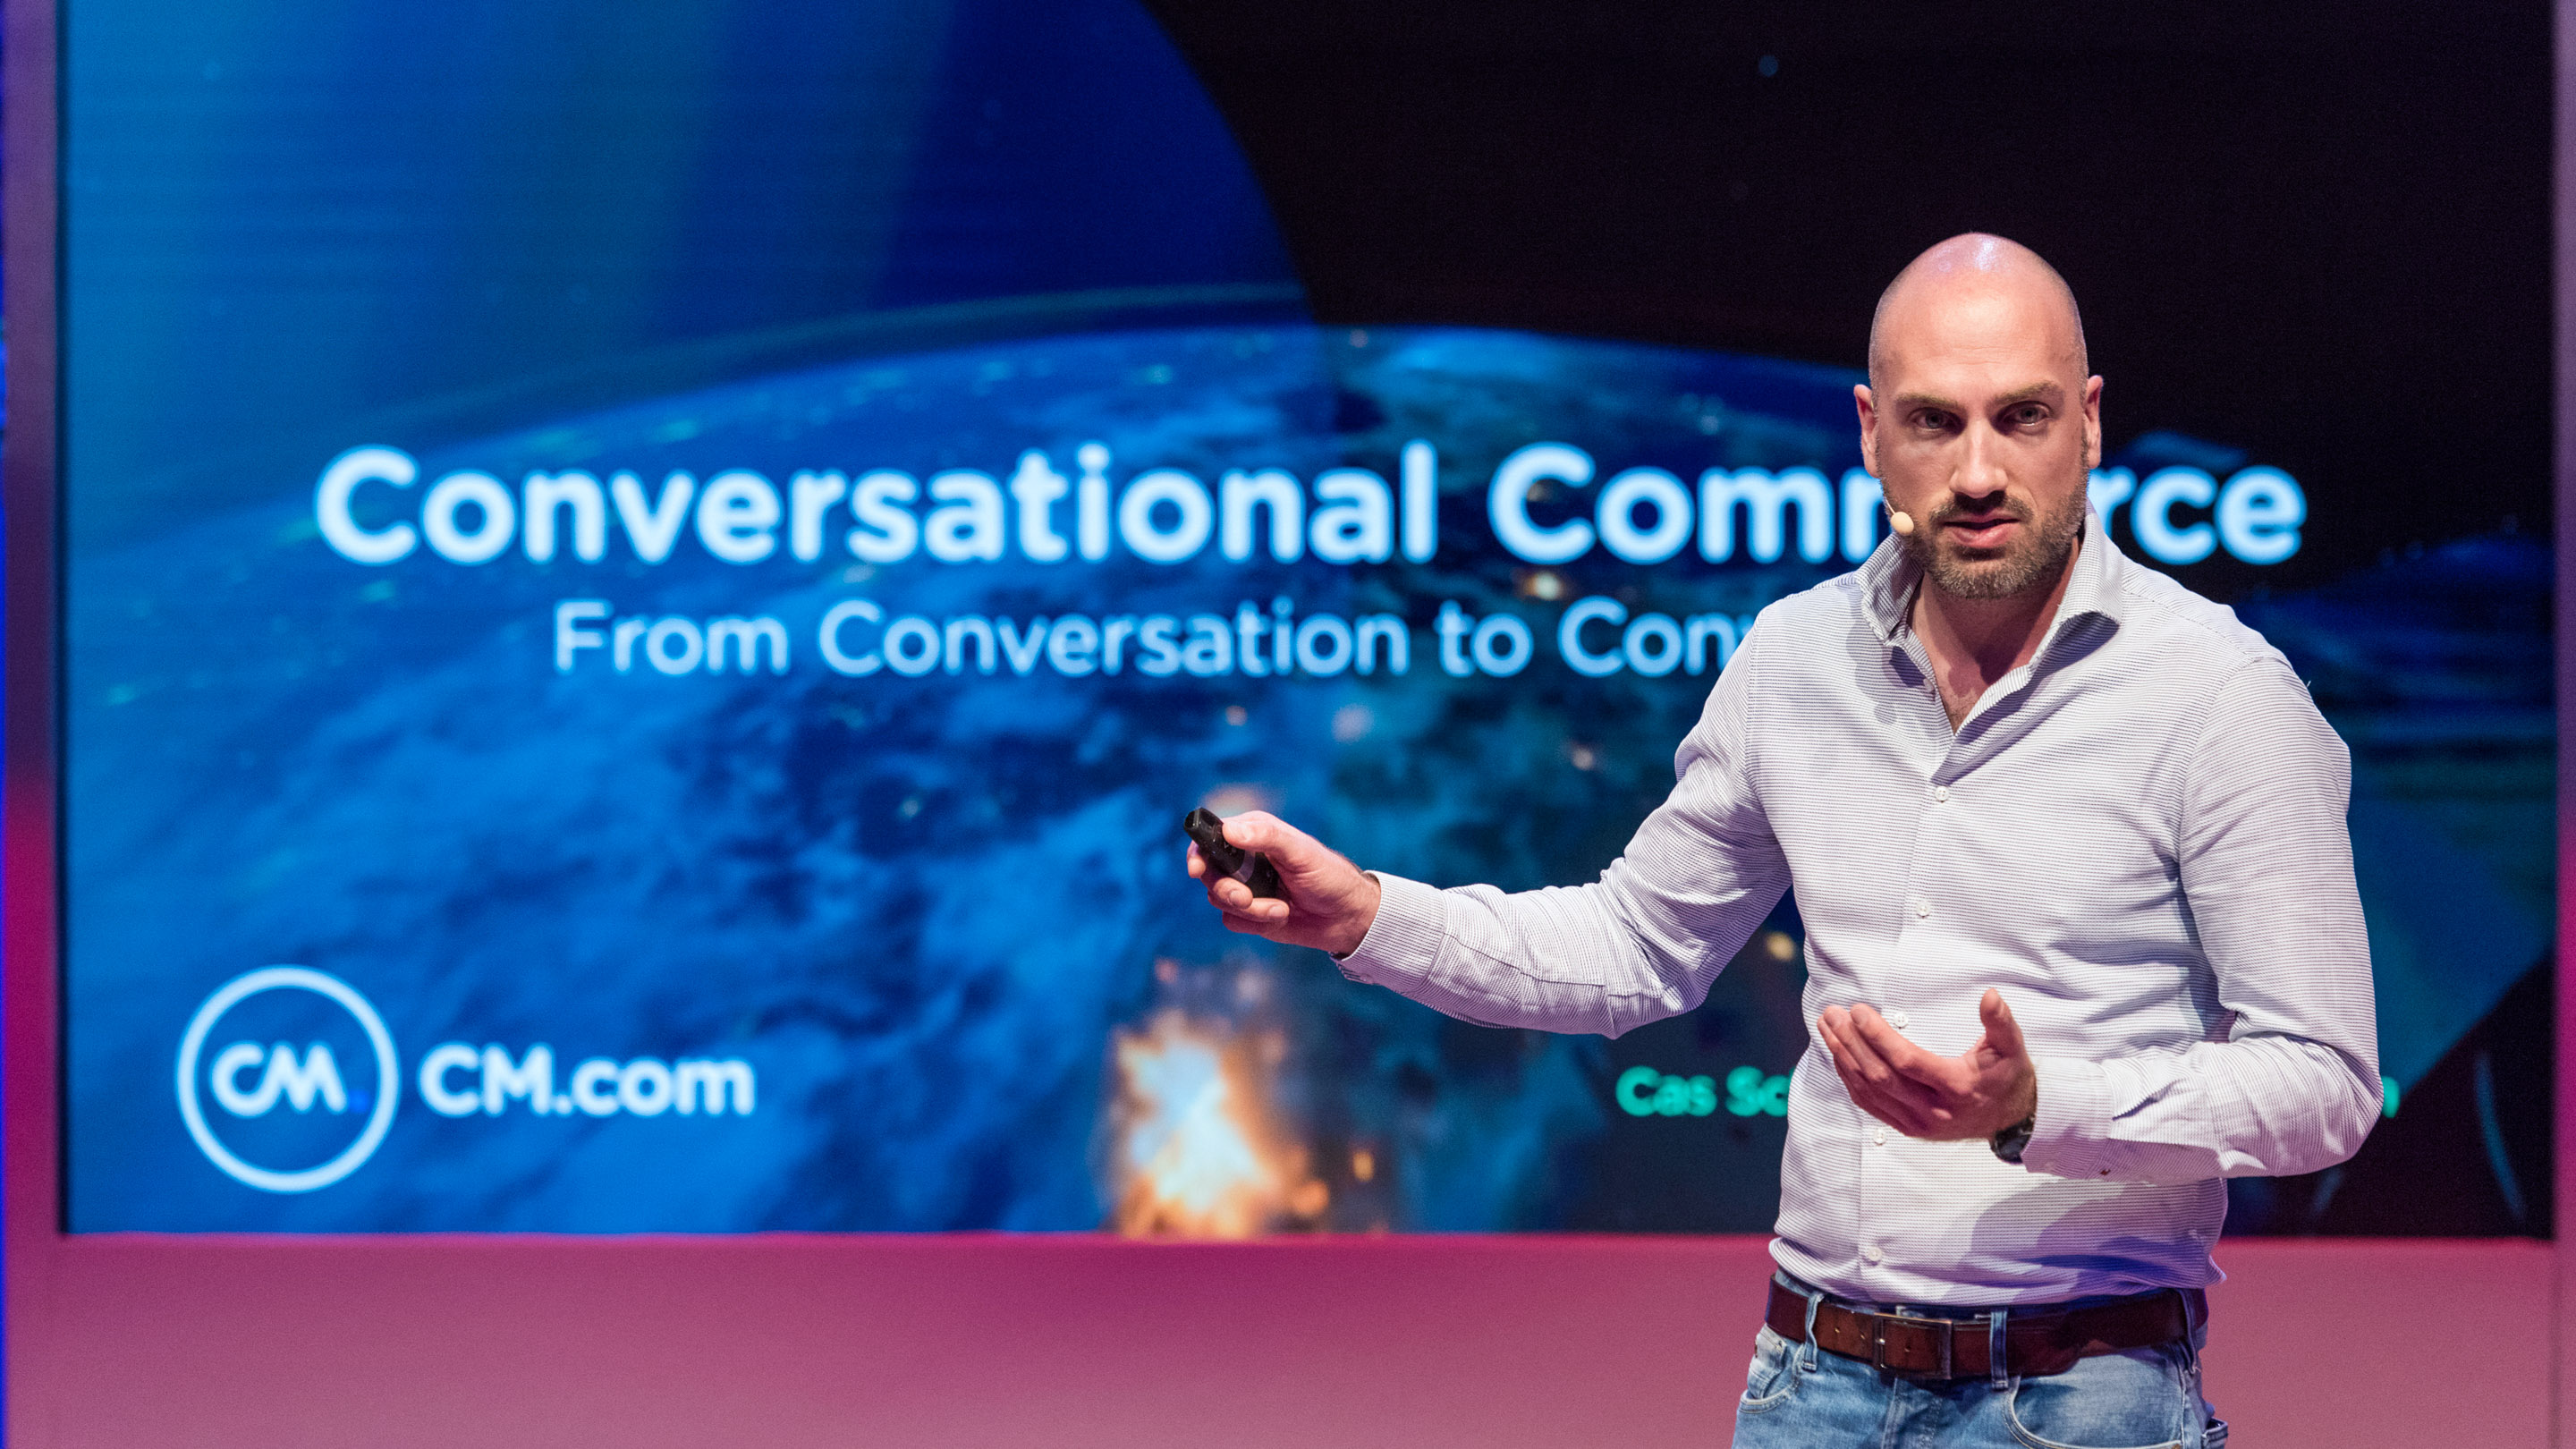 Demo Arena: Conversational Commerce: From Conversation to Conversion, Speaker: Jan Saan, DMEXCO 2019